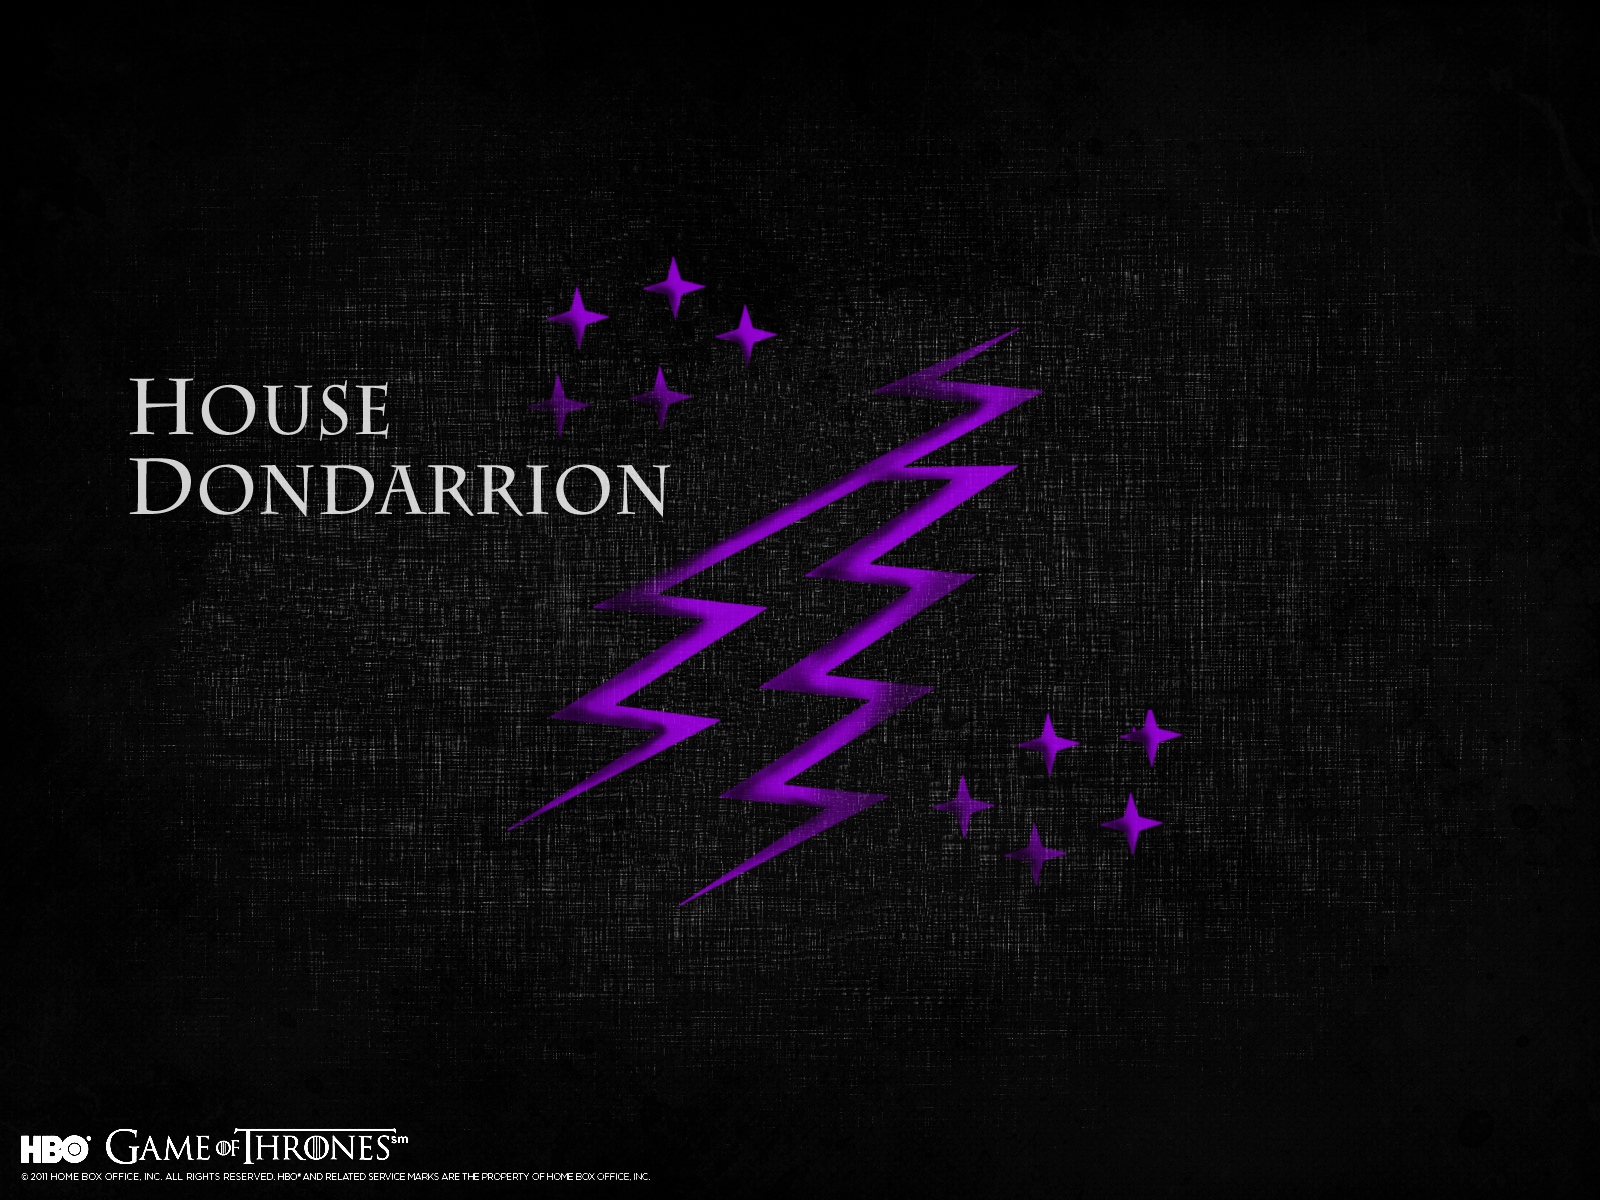 House Dondarrion